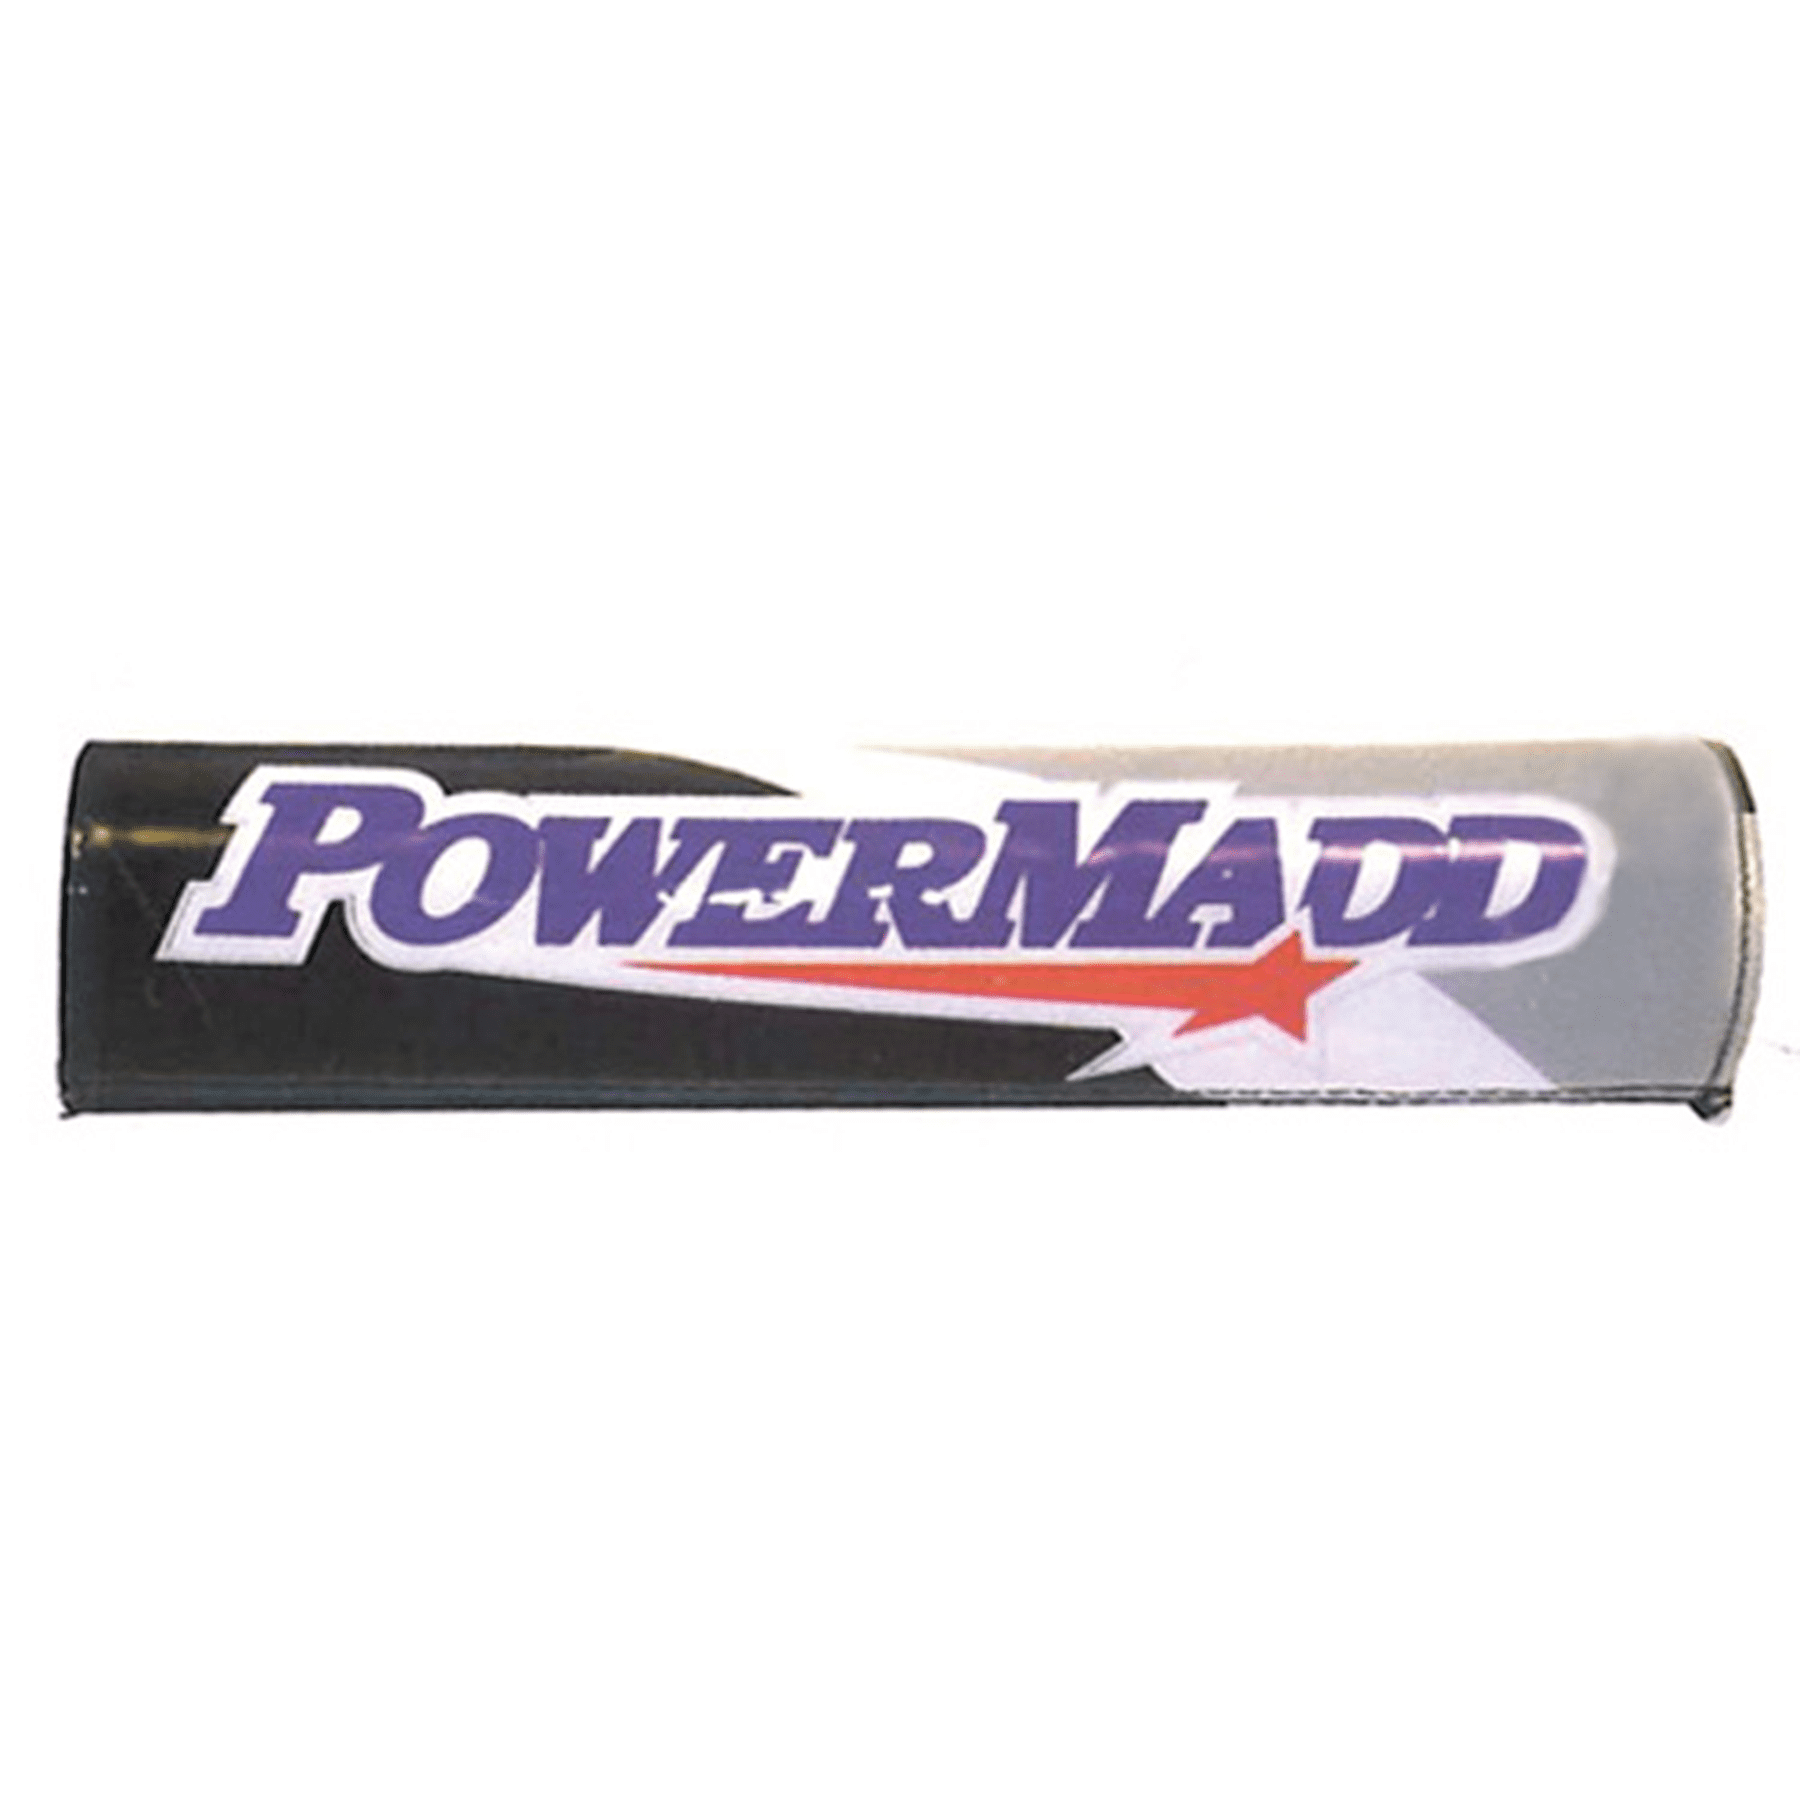 Powermadd Crossbar Pad PM14260